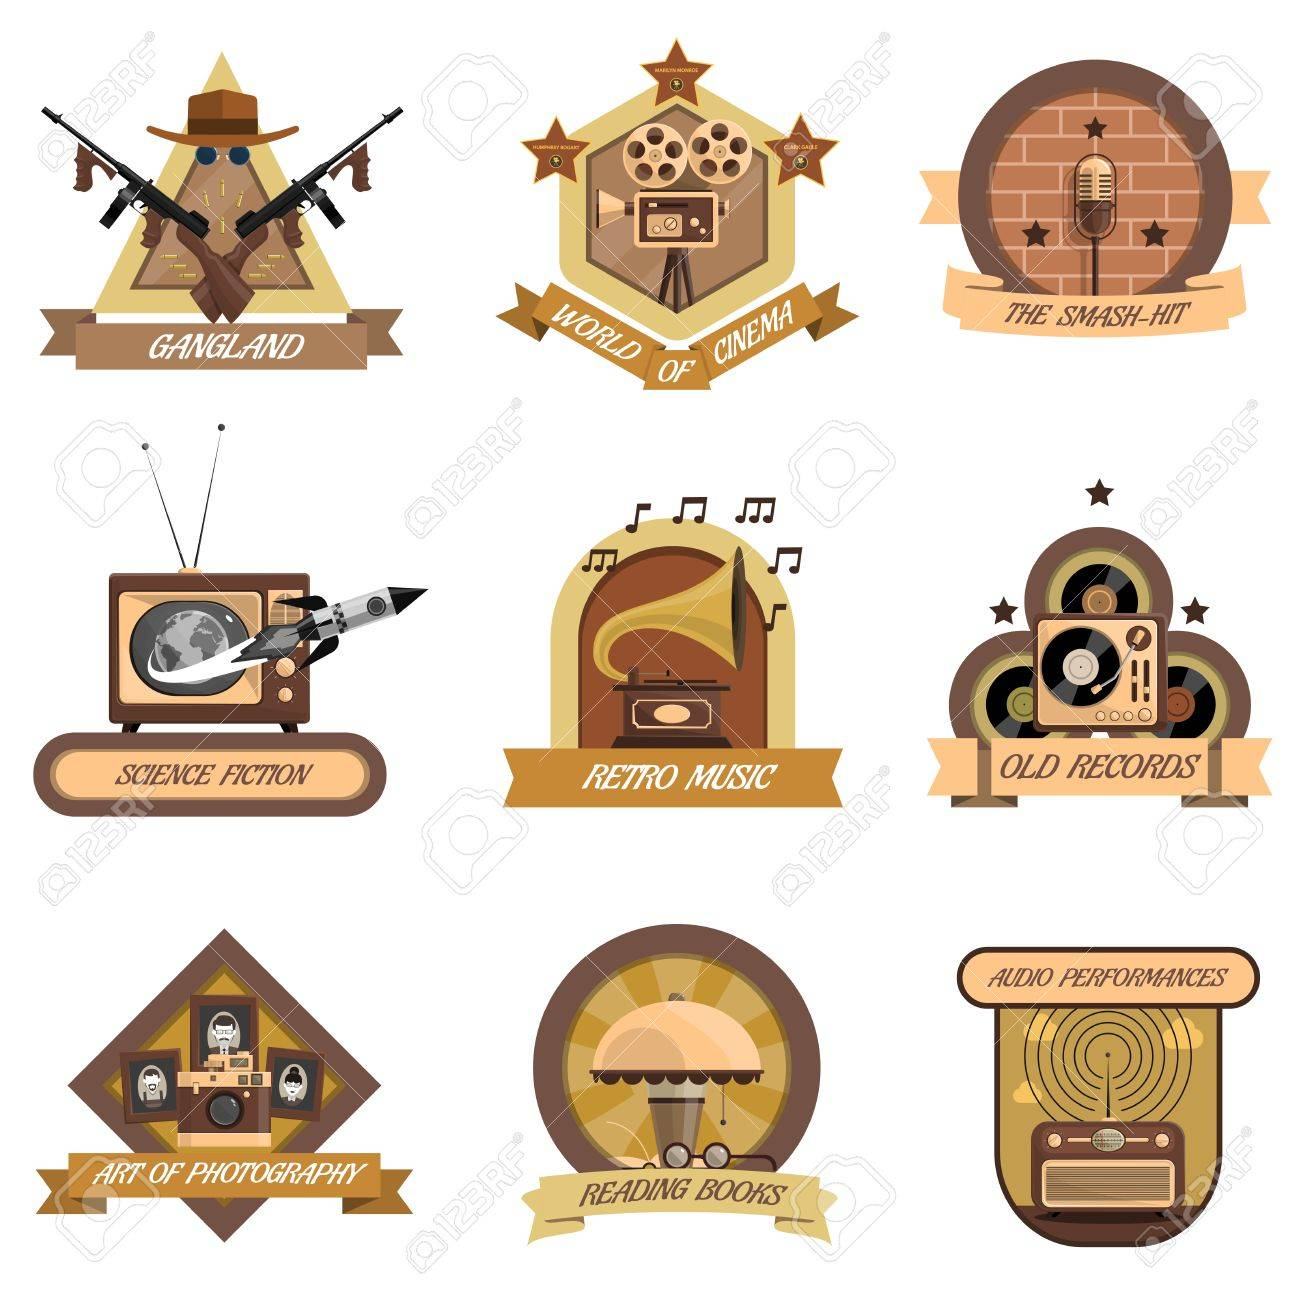 Retro Emblems Set With World Of Cinema And Old Records Symbols